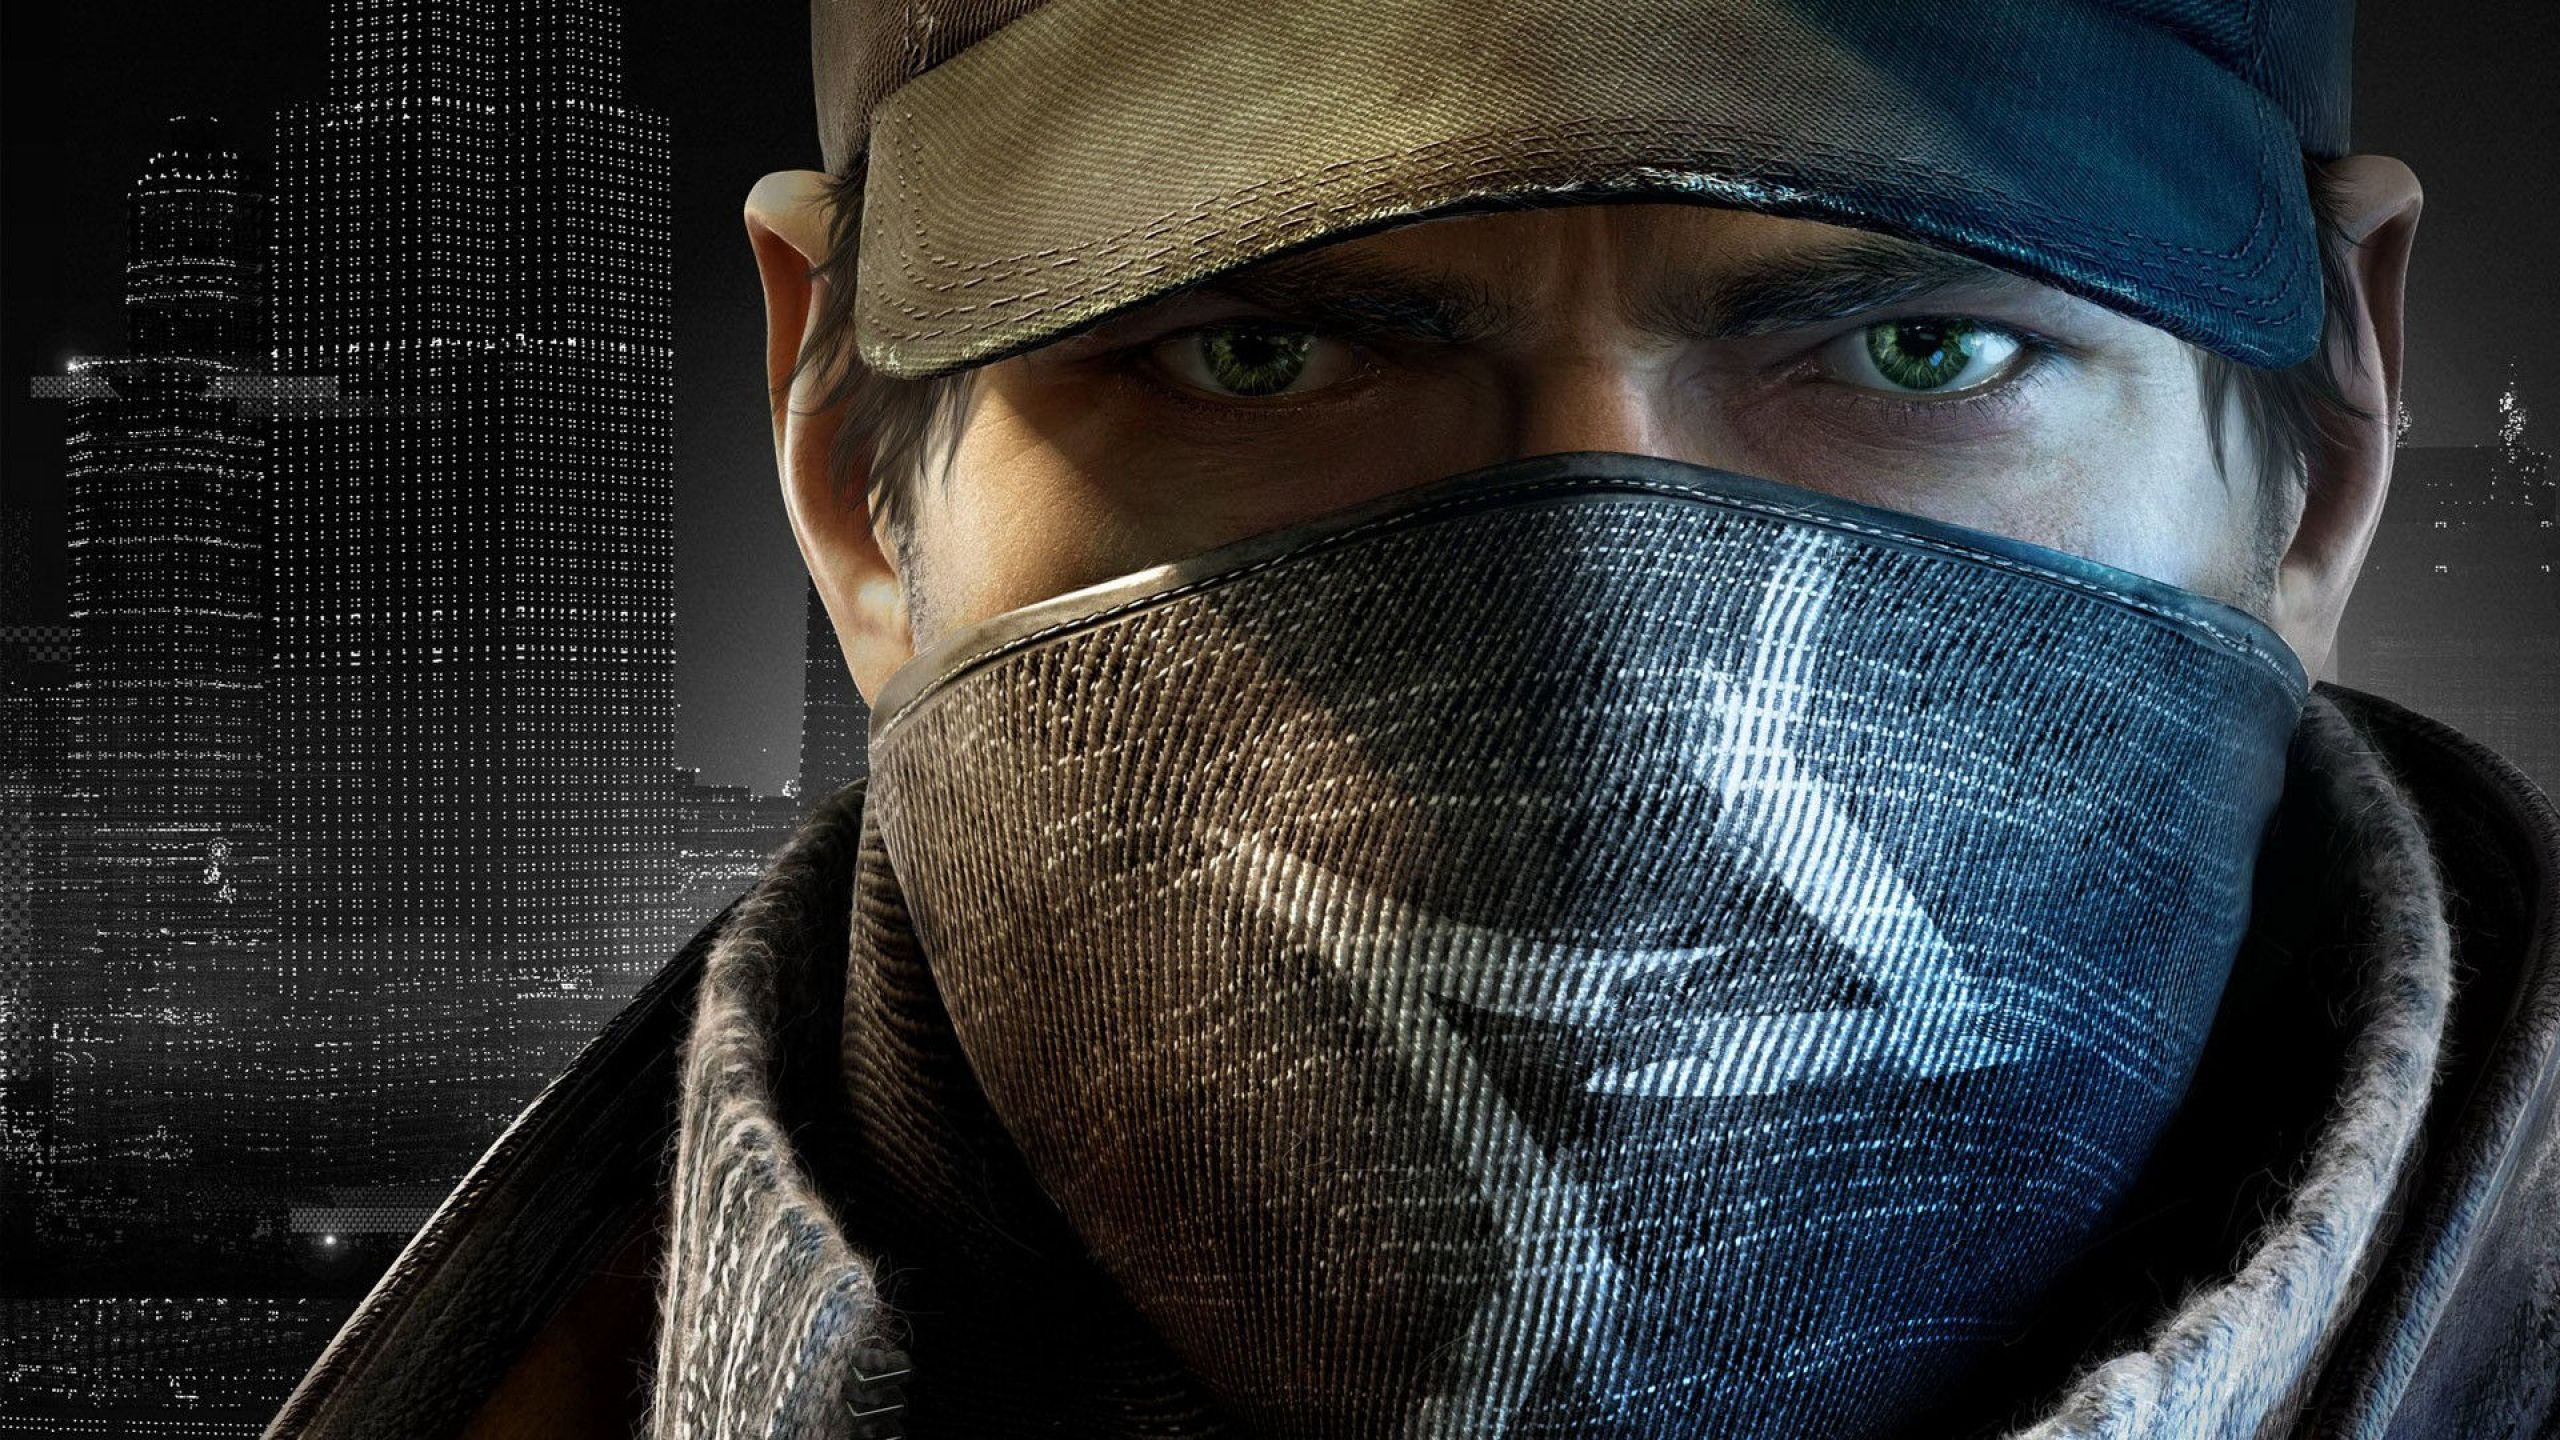 Fond d'écran Watch Dogs